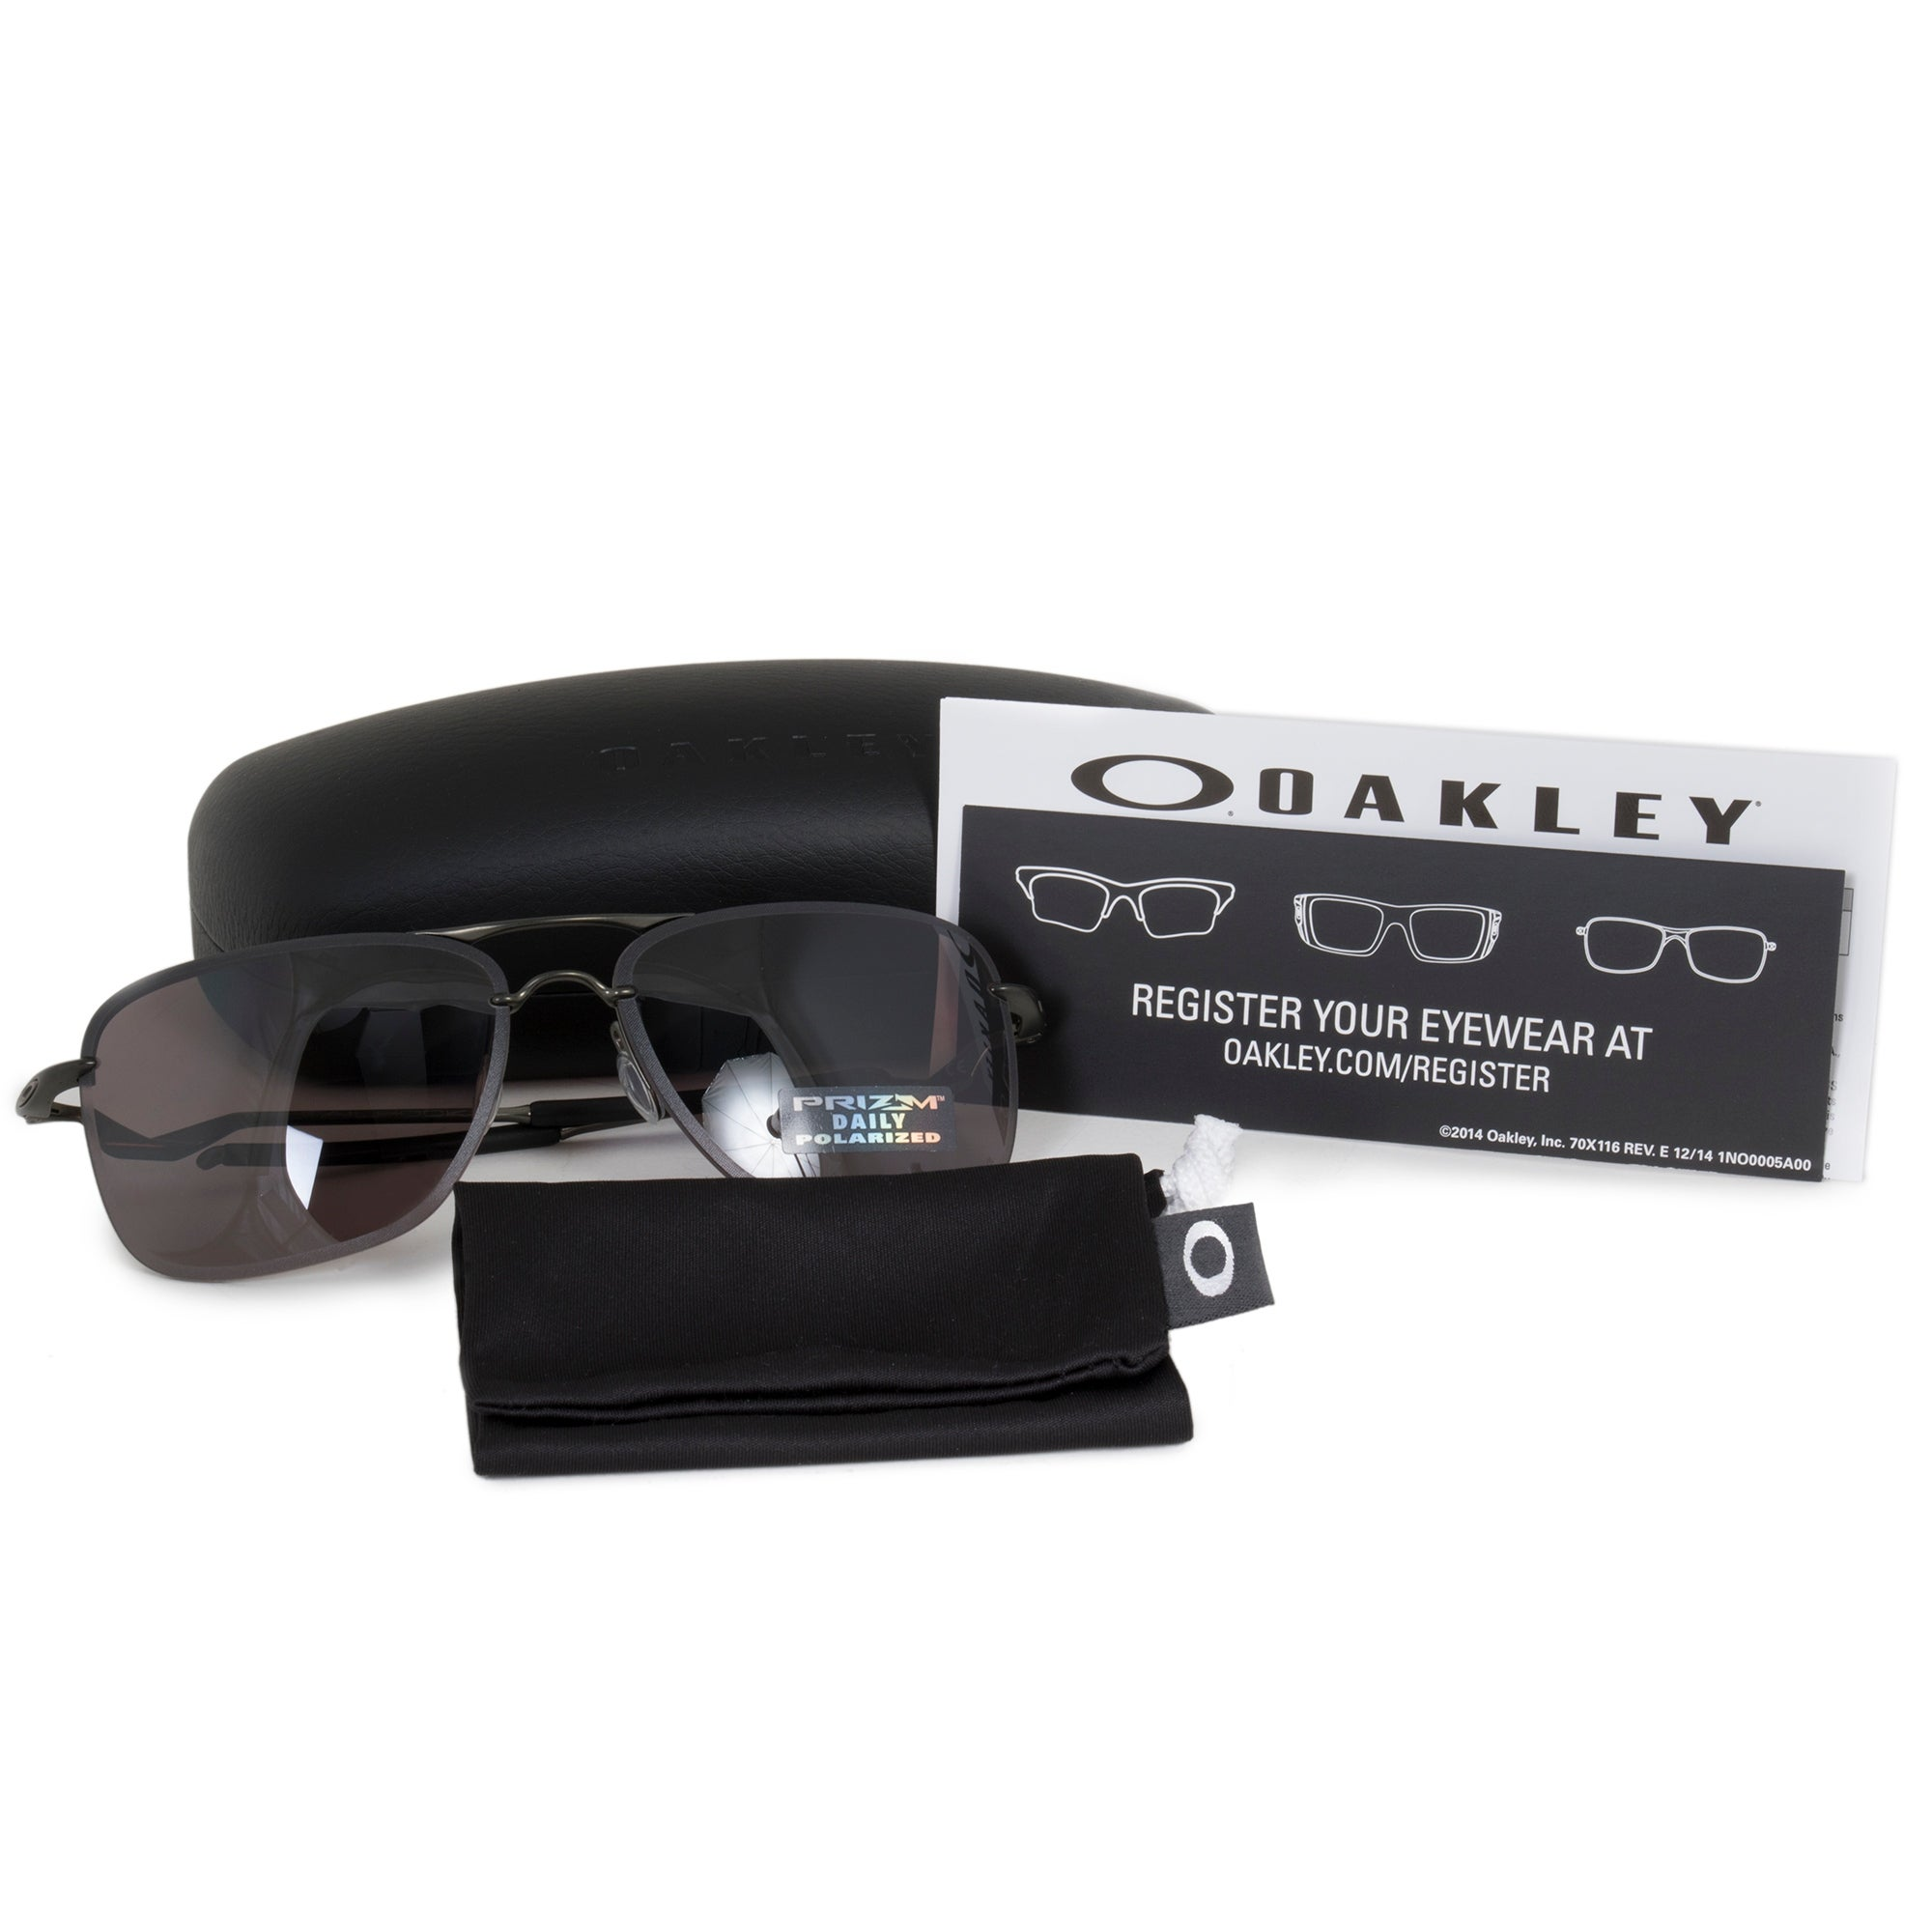 6fcdcd6653a Shop Oakley Tailhook Square Sunglasses 0OO4087 408705 60 POL - On Sale -  Free Shipping Today - Overstock - 19623025